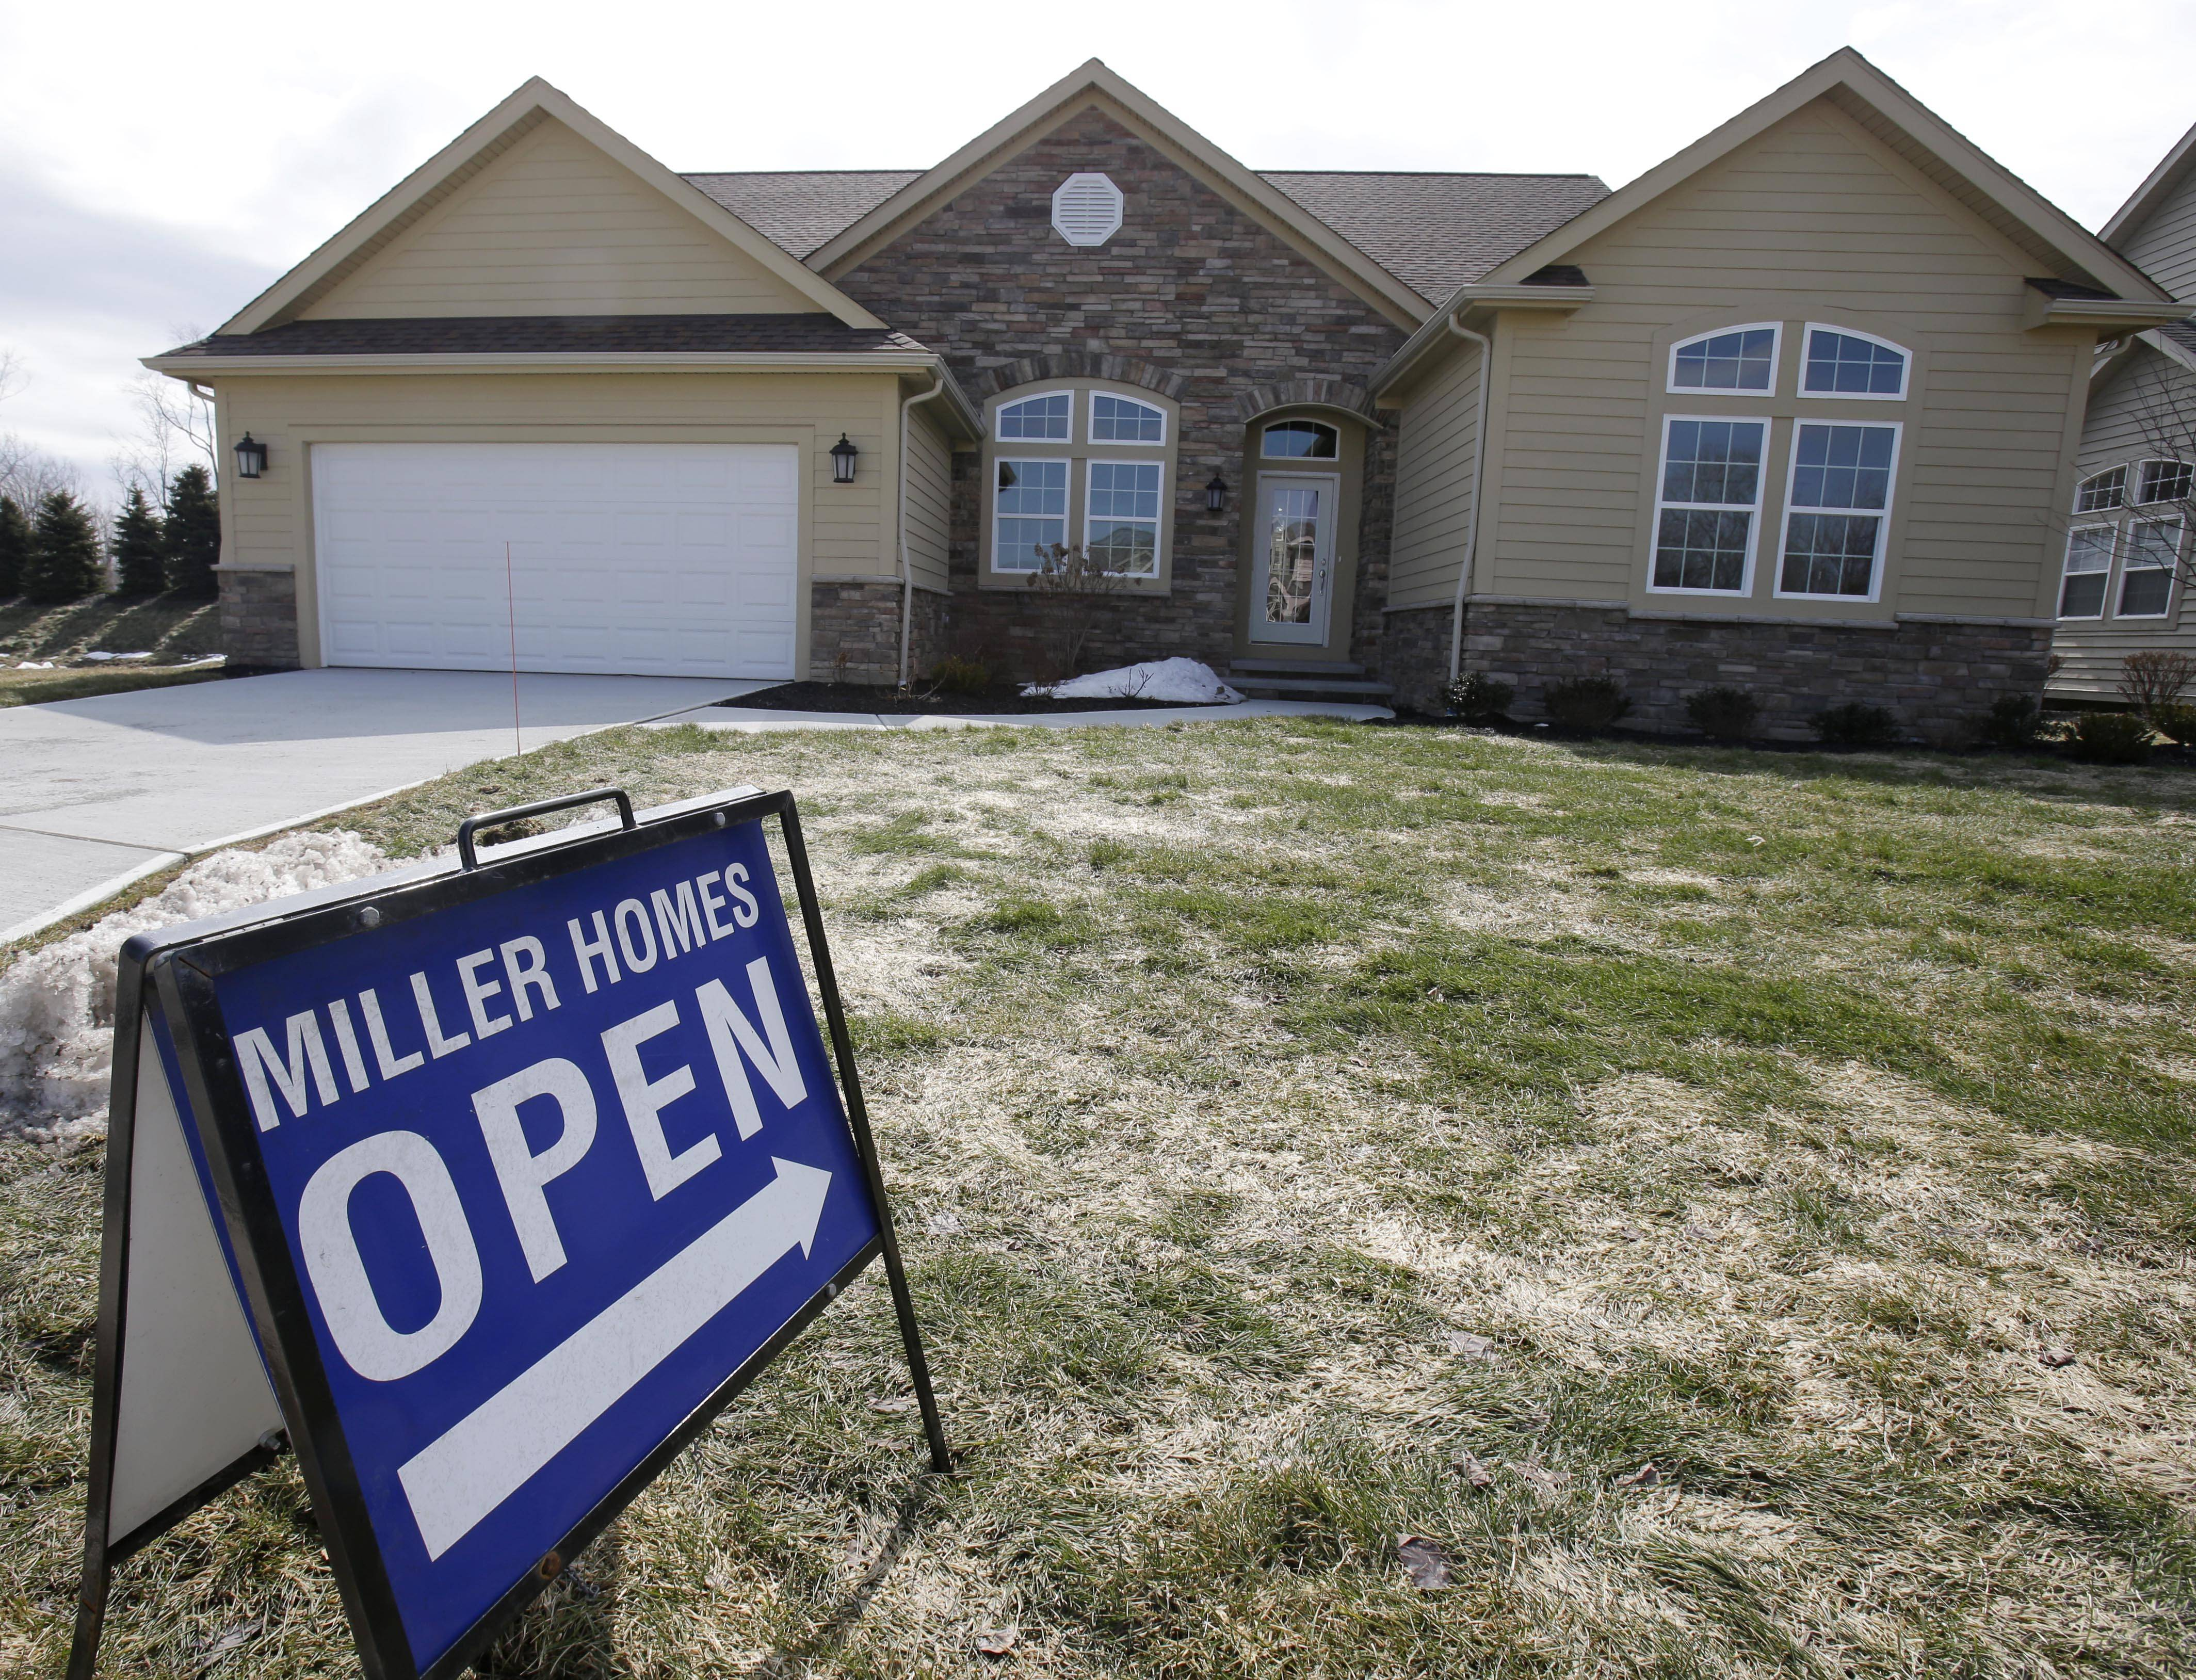 U.S. mortgage rates for 30-year loans rose to a two-month high, increasing borrowing costs for homebuyers as the market's recovery showed signs of weakening.